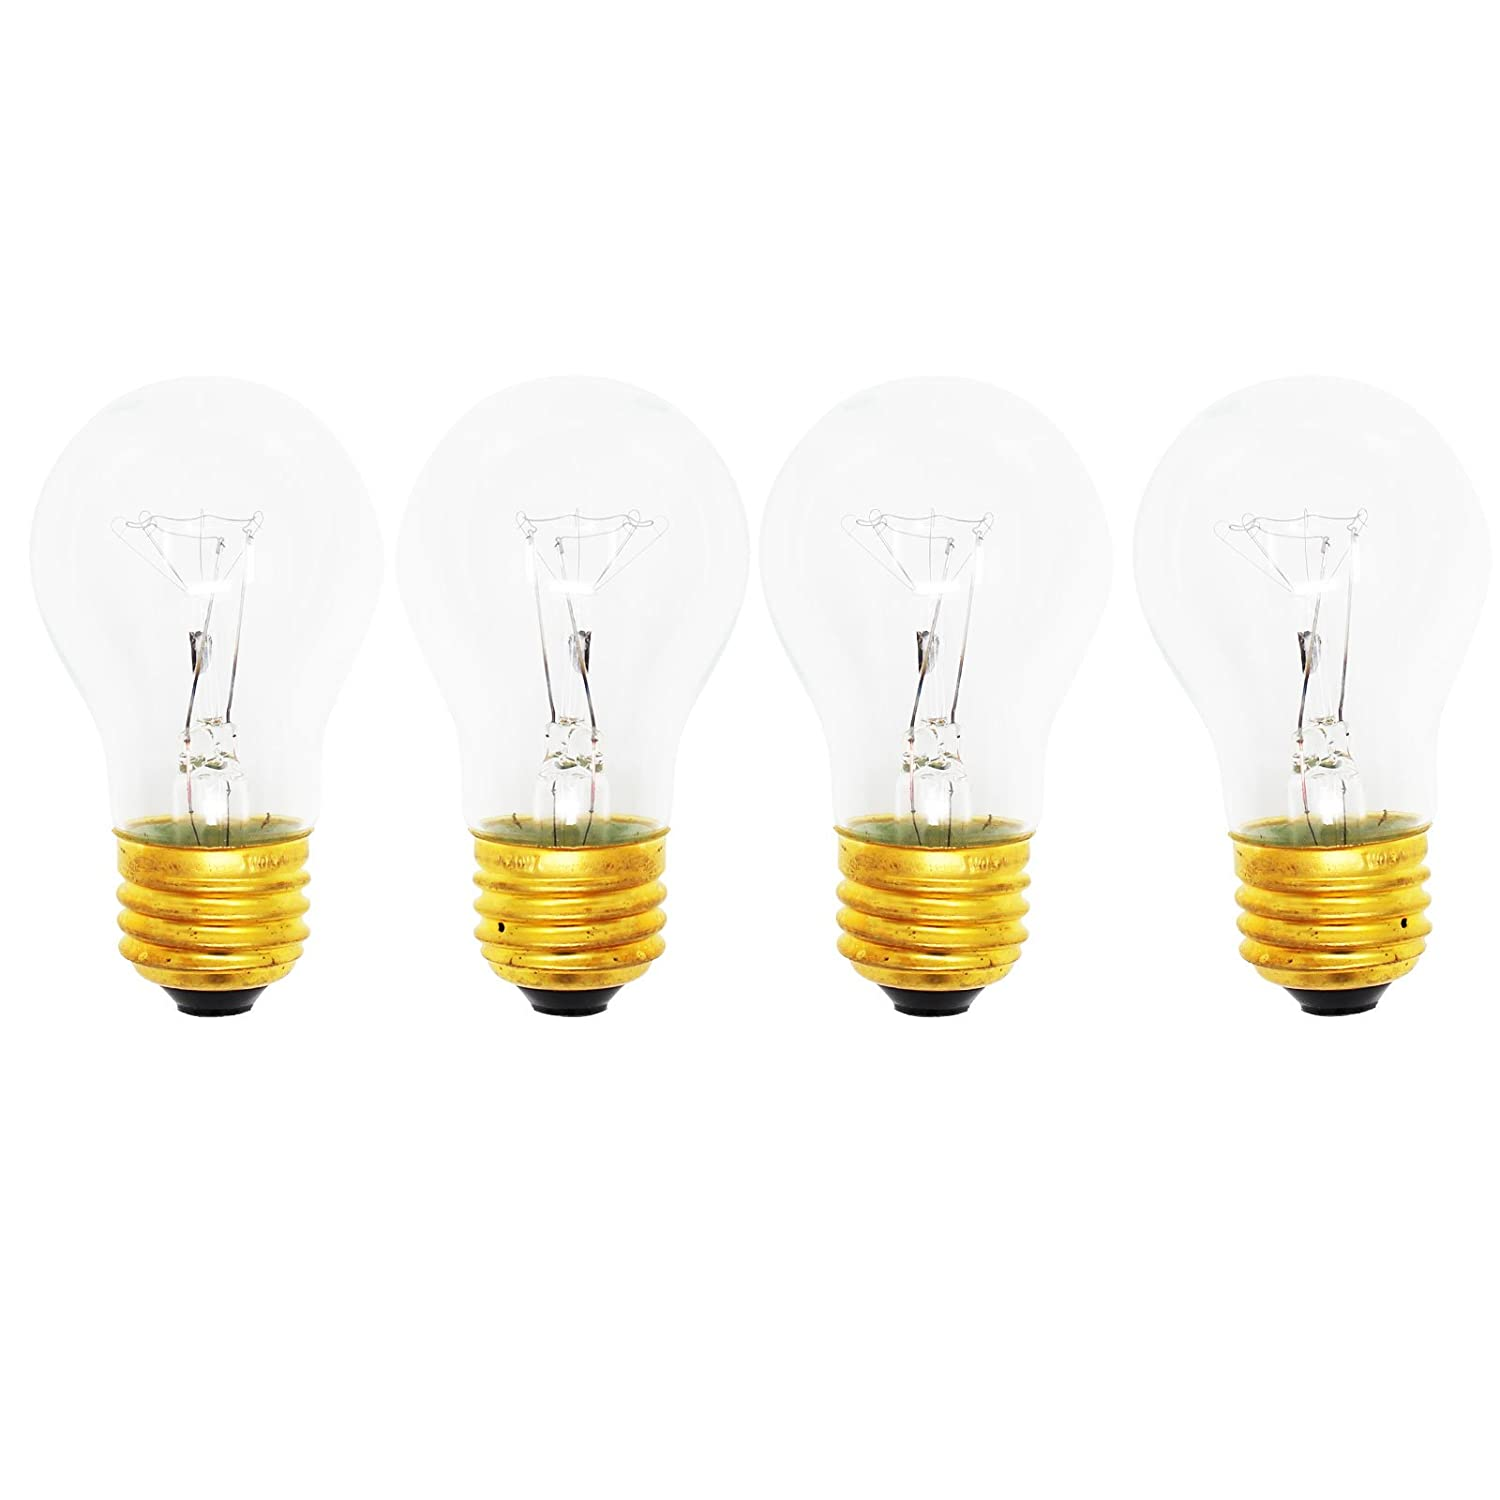 4-Pack Replacement Light Bulb for Amana TR21VL - Compatible Amana 8009 Light Bulb